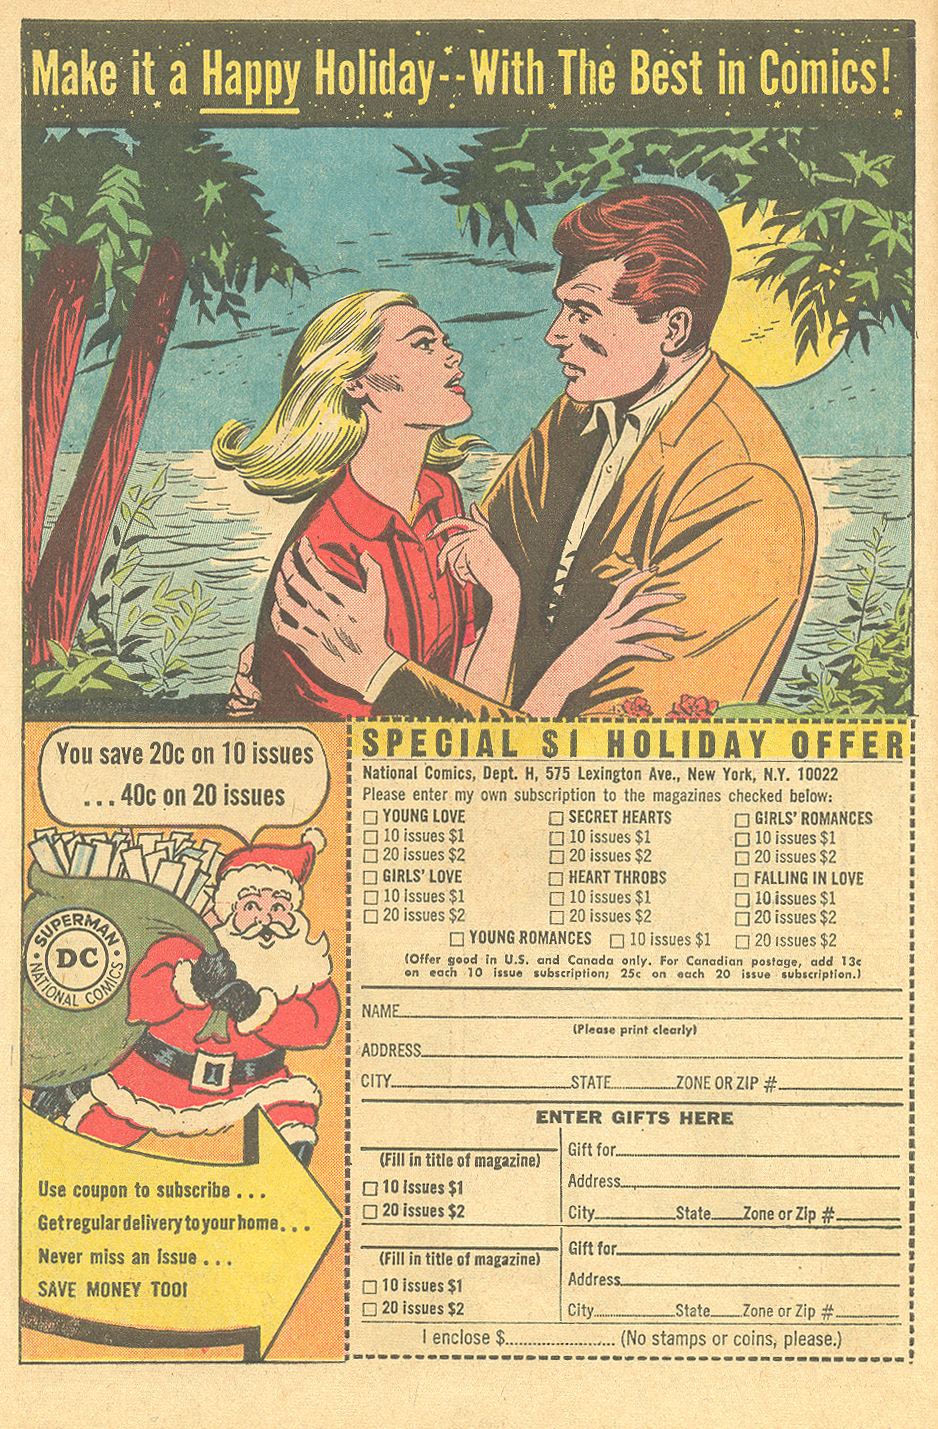 Holiday-themed house ad from DC's Falling in Love #74 (April 1965).